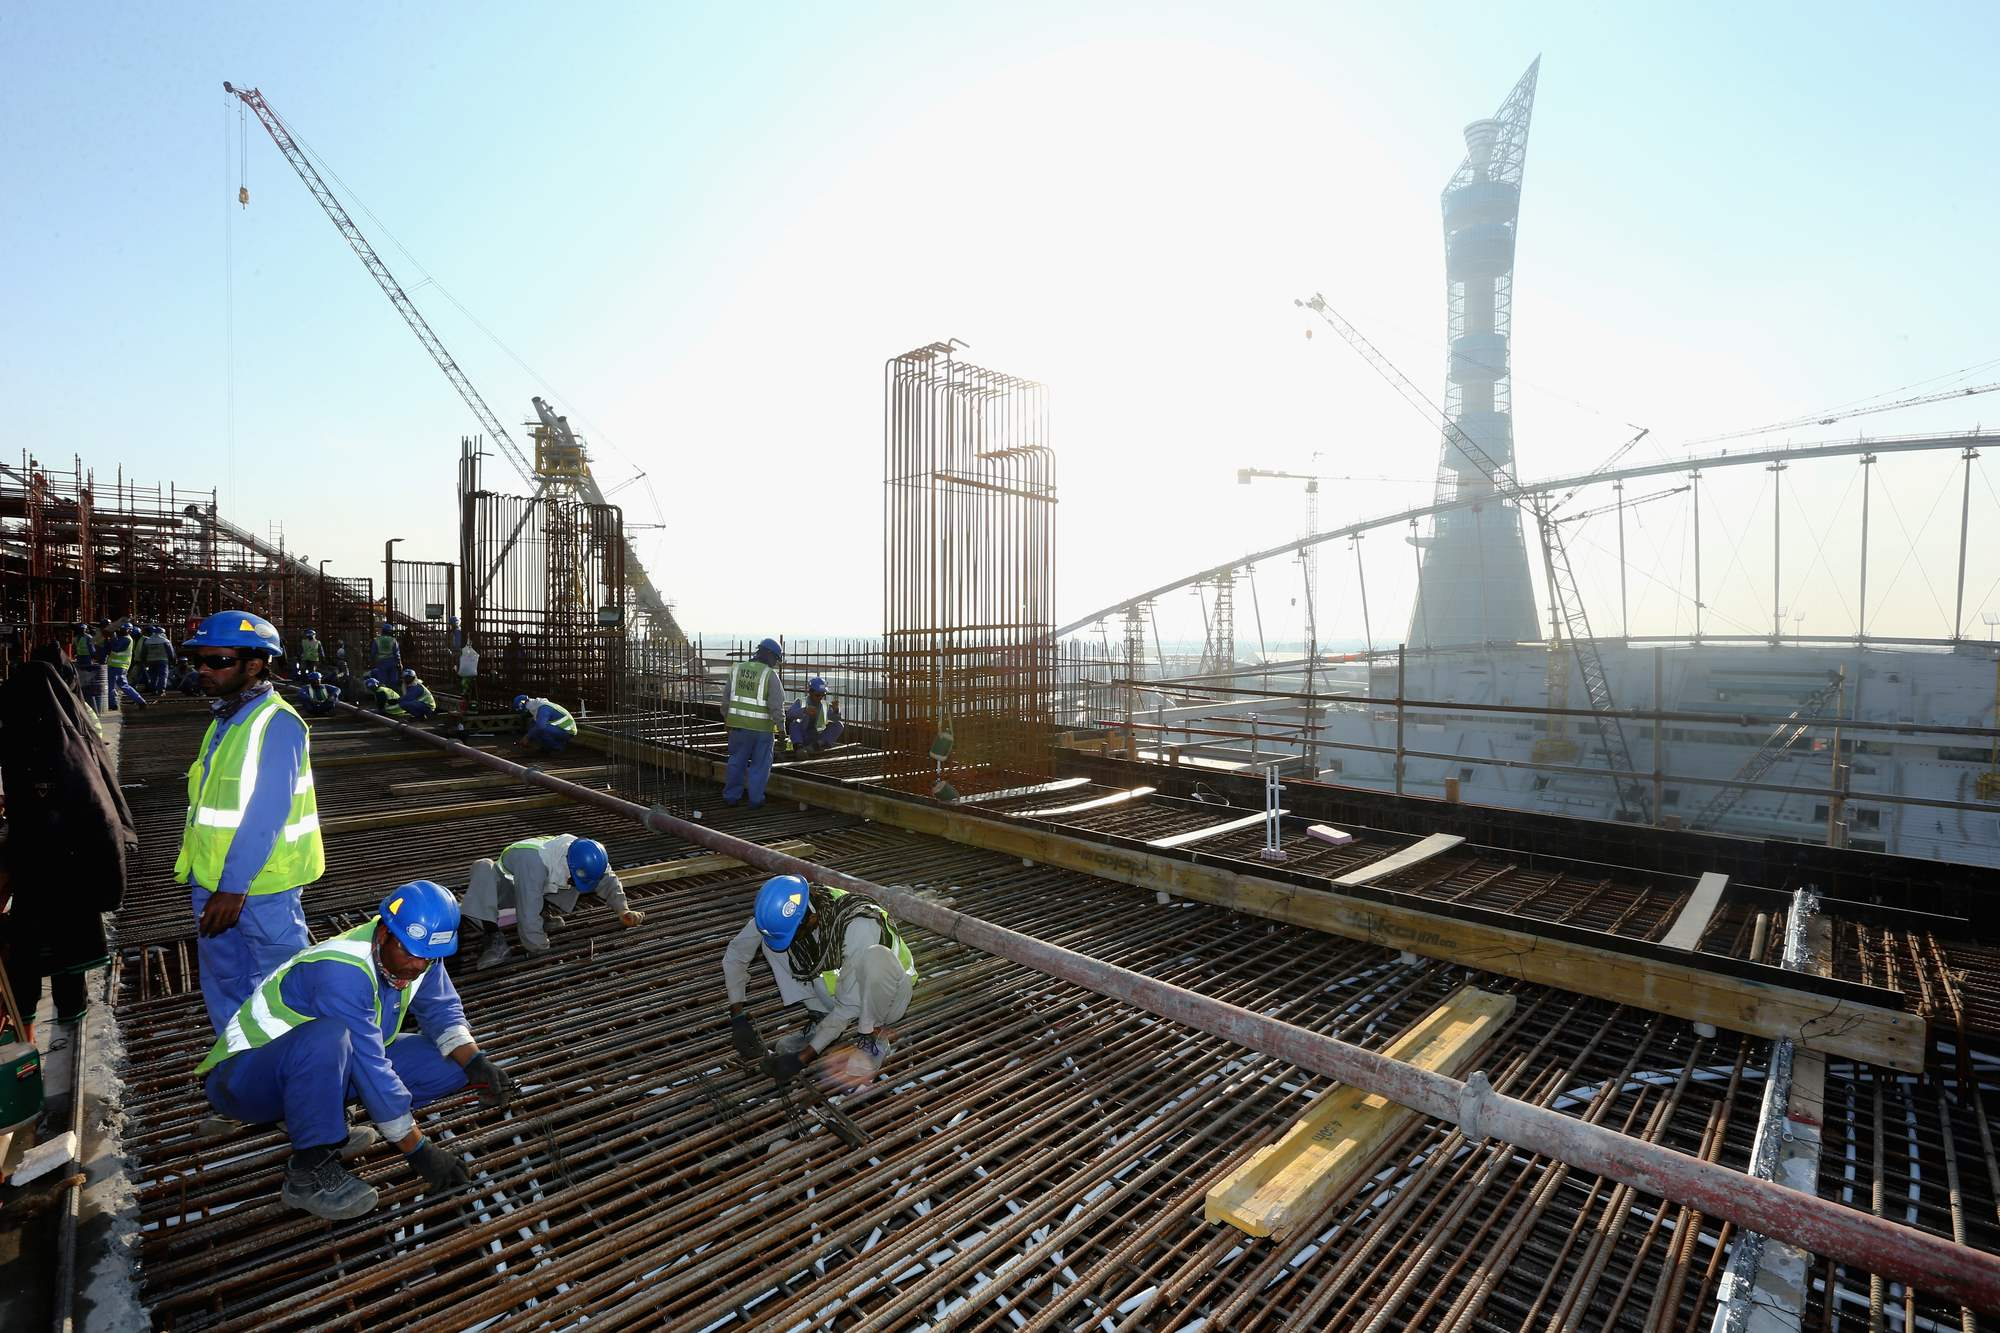 As construction continues at 2022 FIFA World Cup stadiums in Qatar, Amnesty International is campaigning to improve migrant workers' rights. Photo: Getty Images.